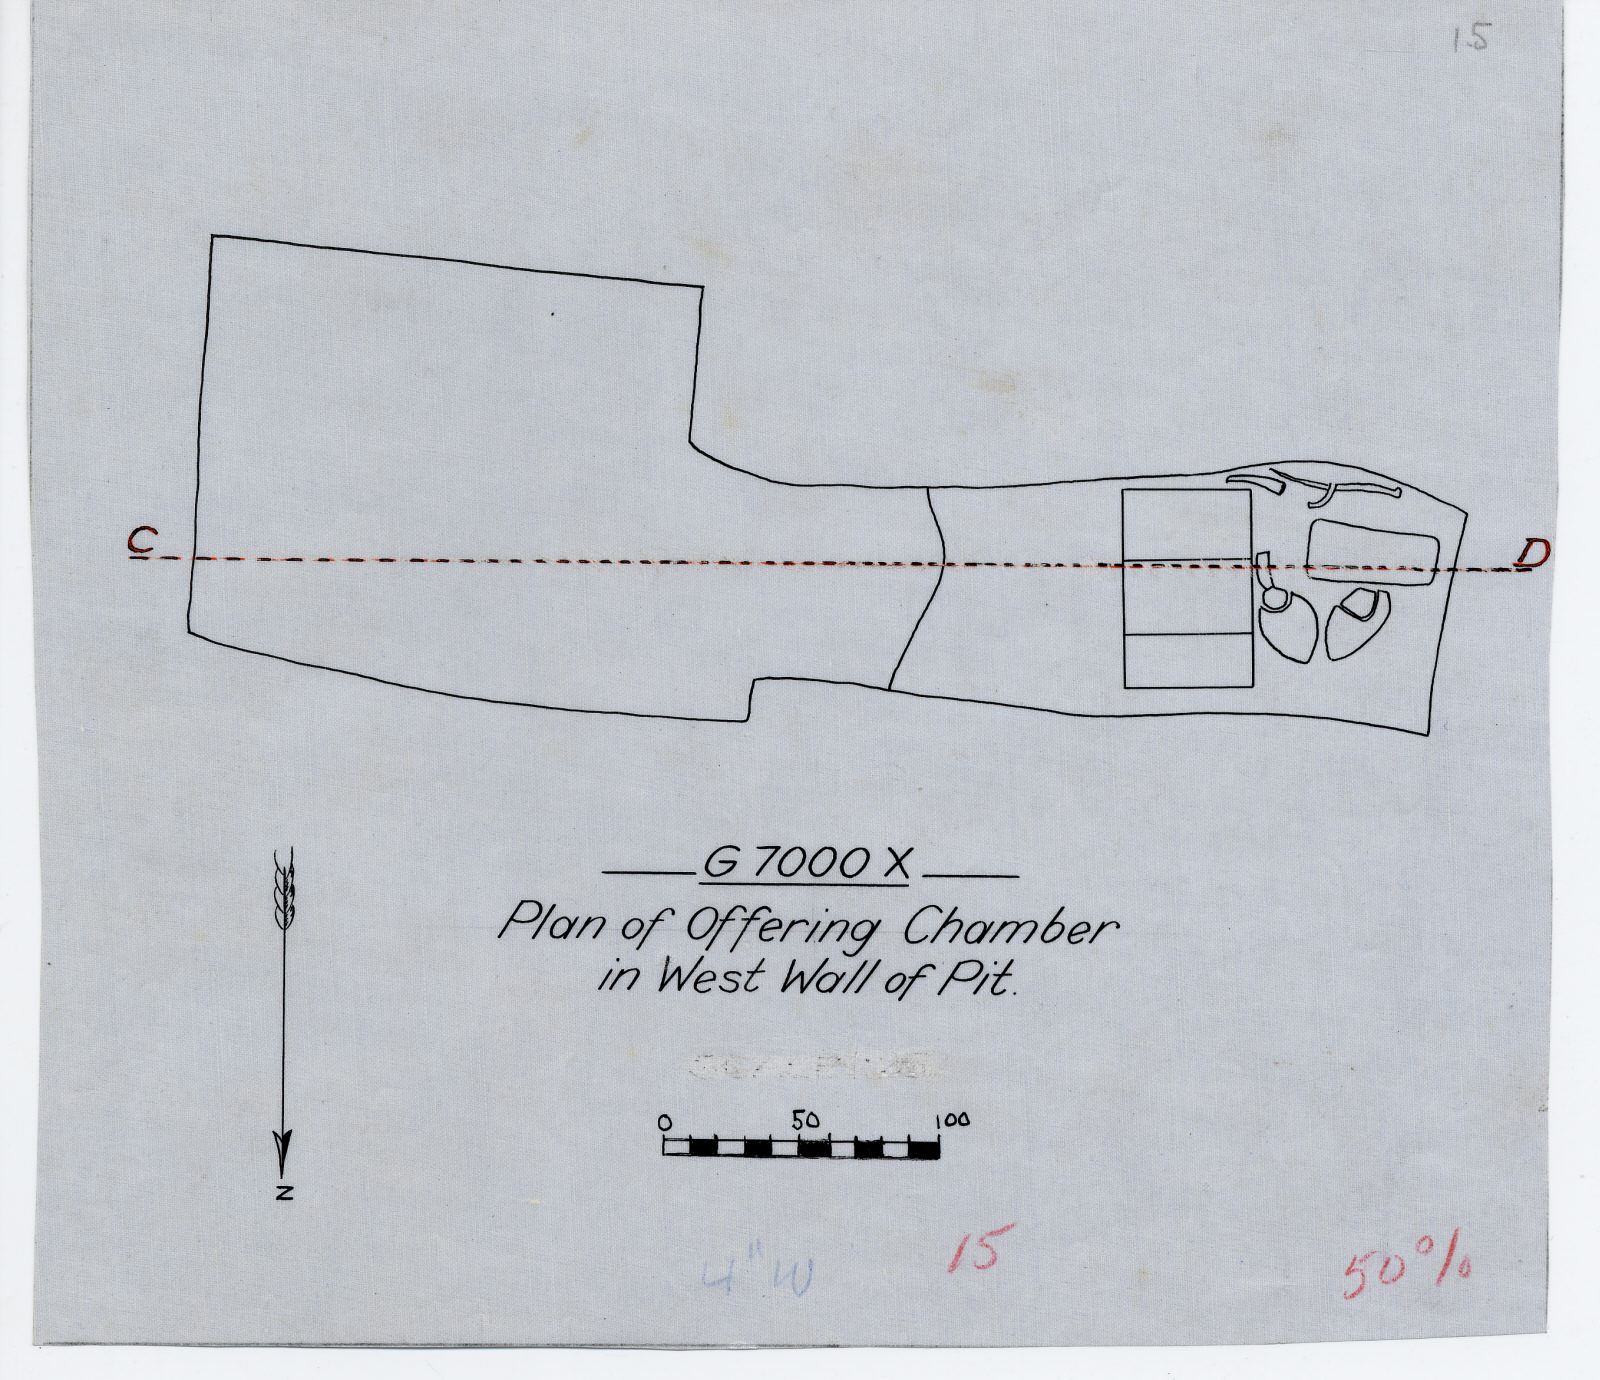 Maps and plans: G 7000 X, Plan of offering chamber